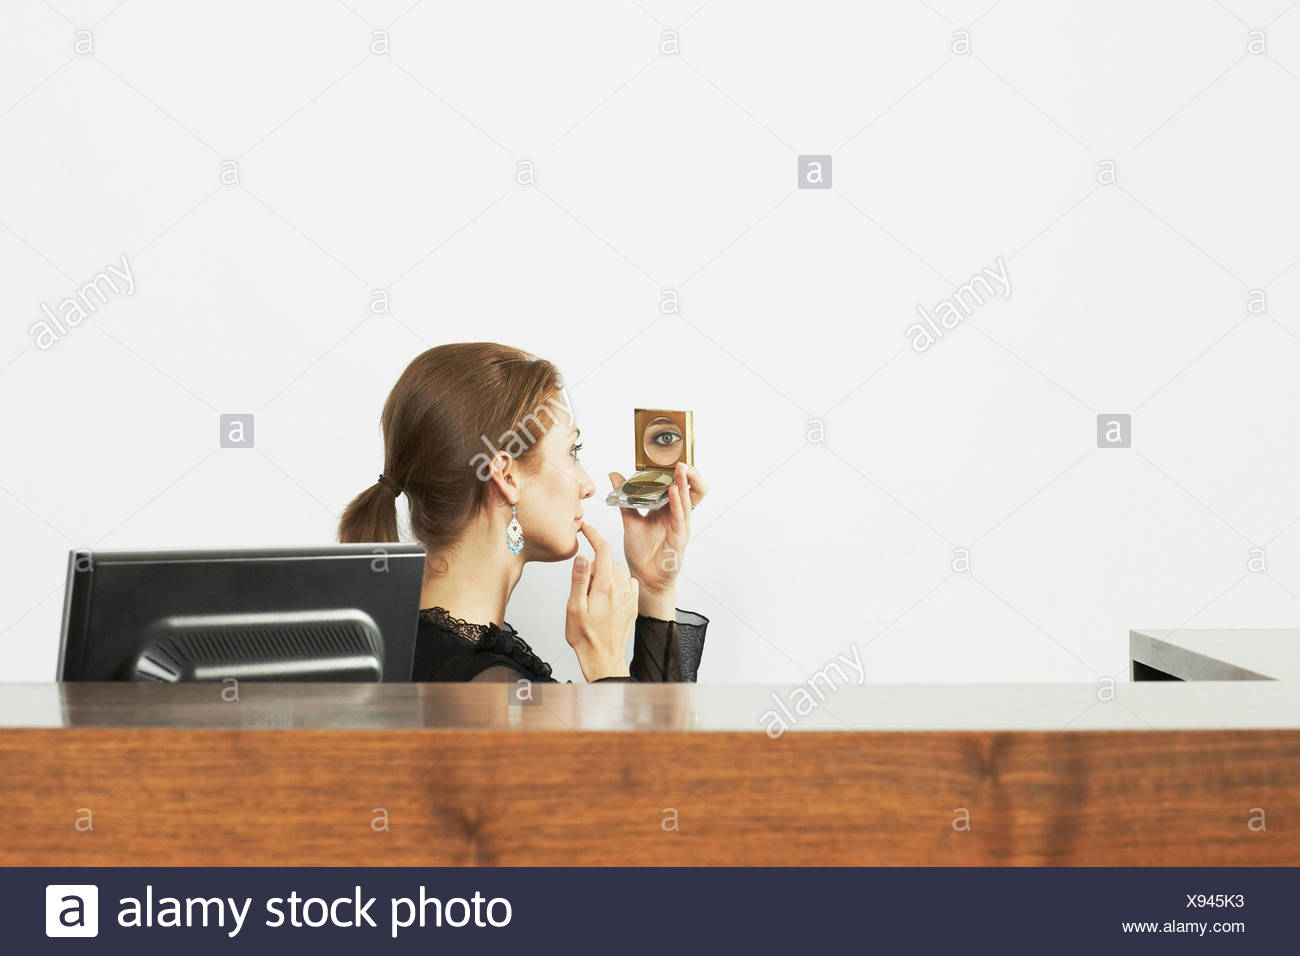 Woman at a desk with a compact mirror - Stock Image